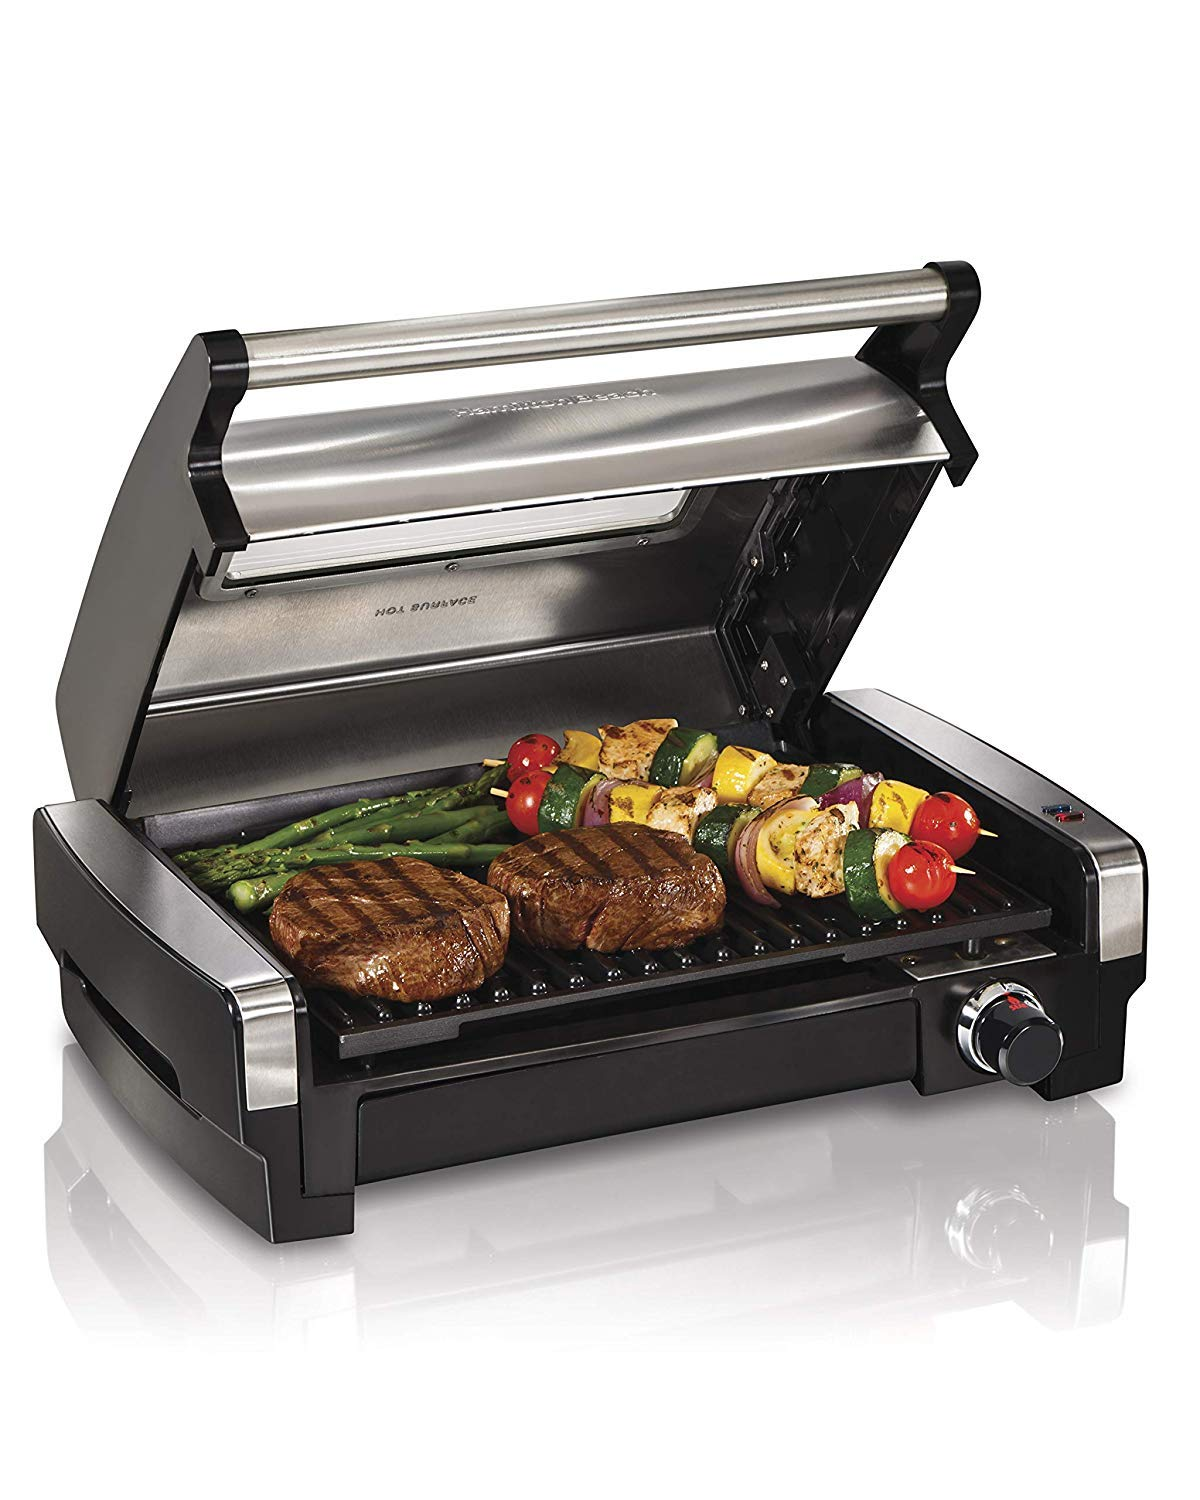 SD LIFE Indoor Outdoor Steel Electric Grill Barbecue Master Smoke Free Non Stick